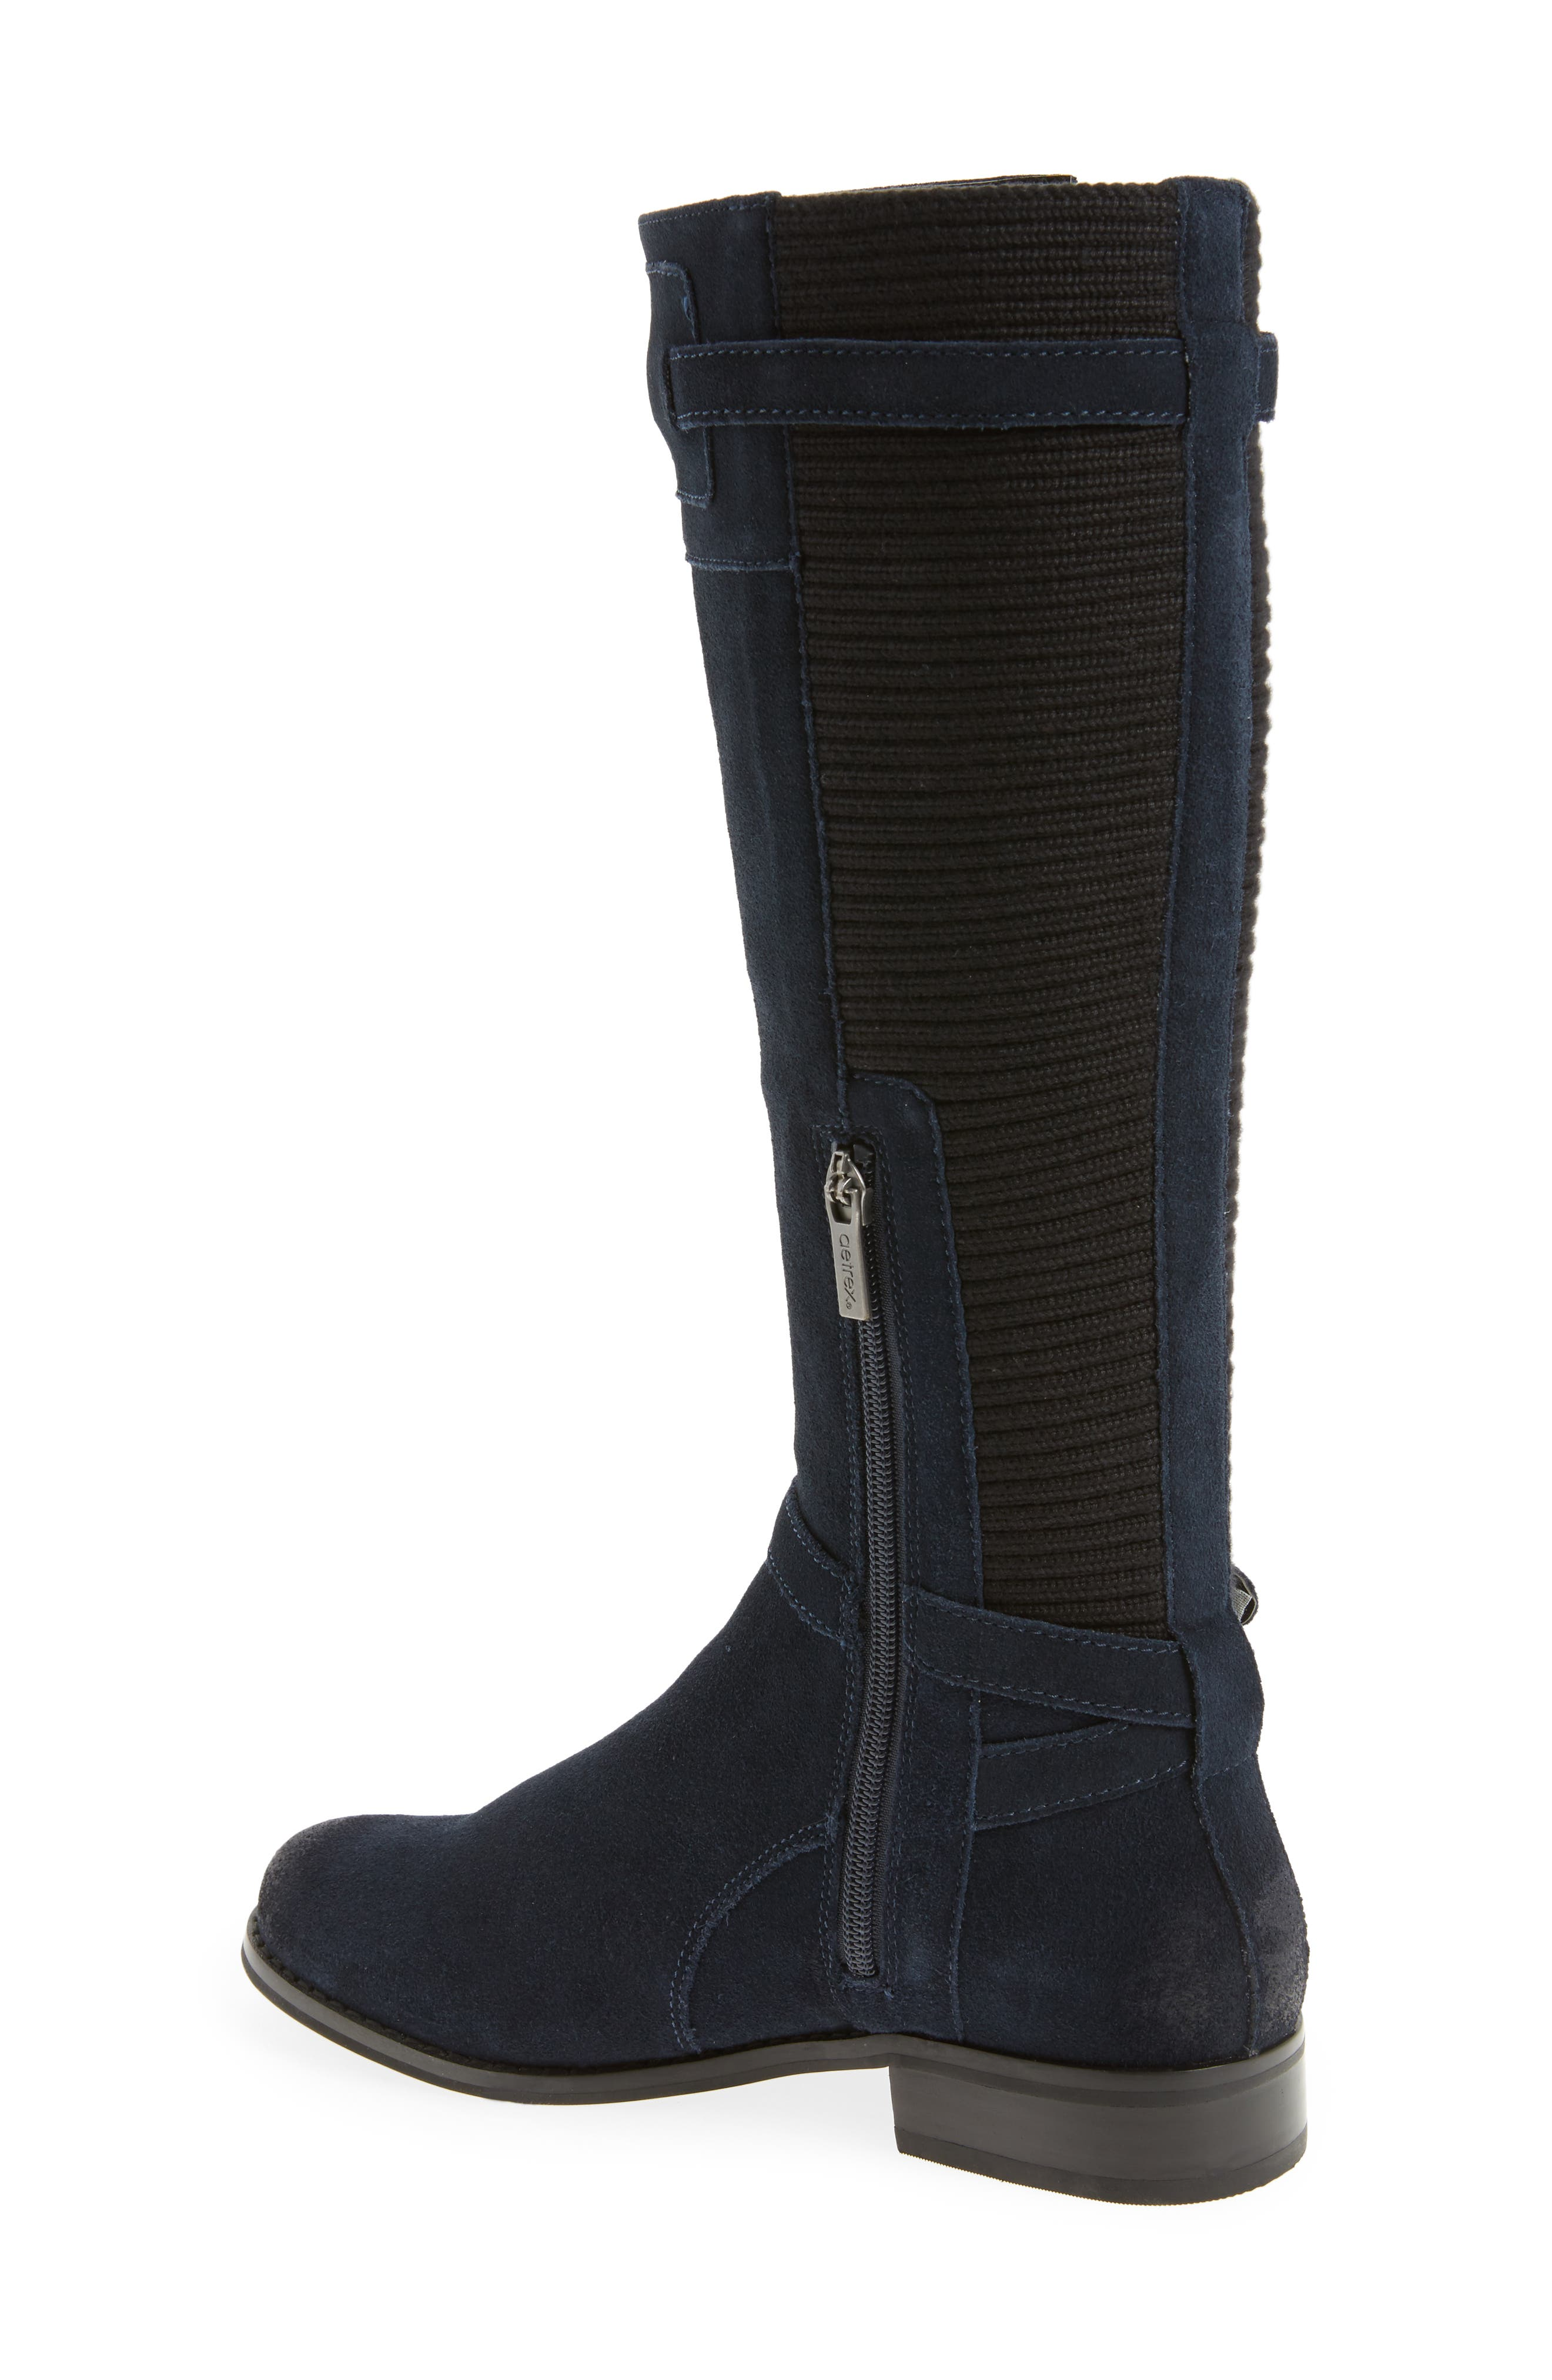 'Chelsea' Riding Boot,                             Alternate thumbnail 2, color,                             NAVY SUEDE